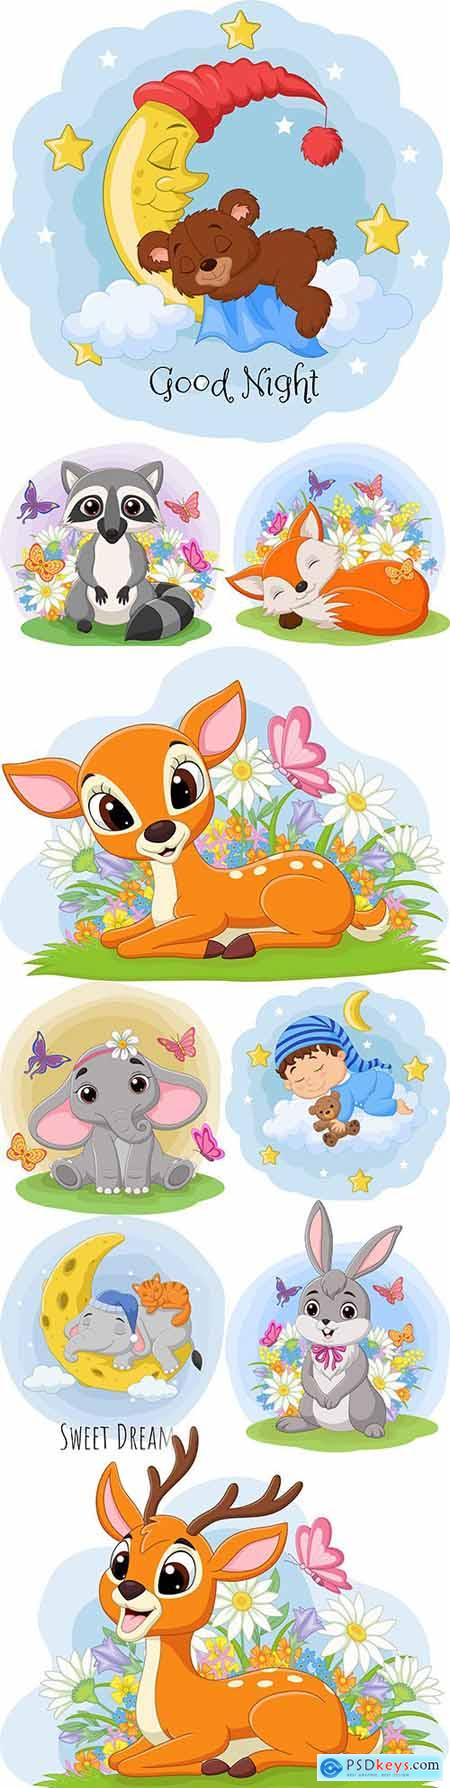 Cartoon animals with flowers and butterflies illustration